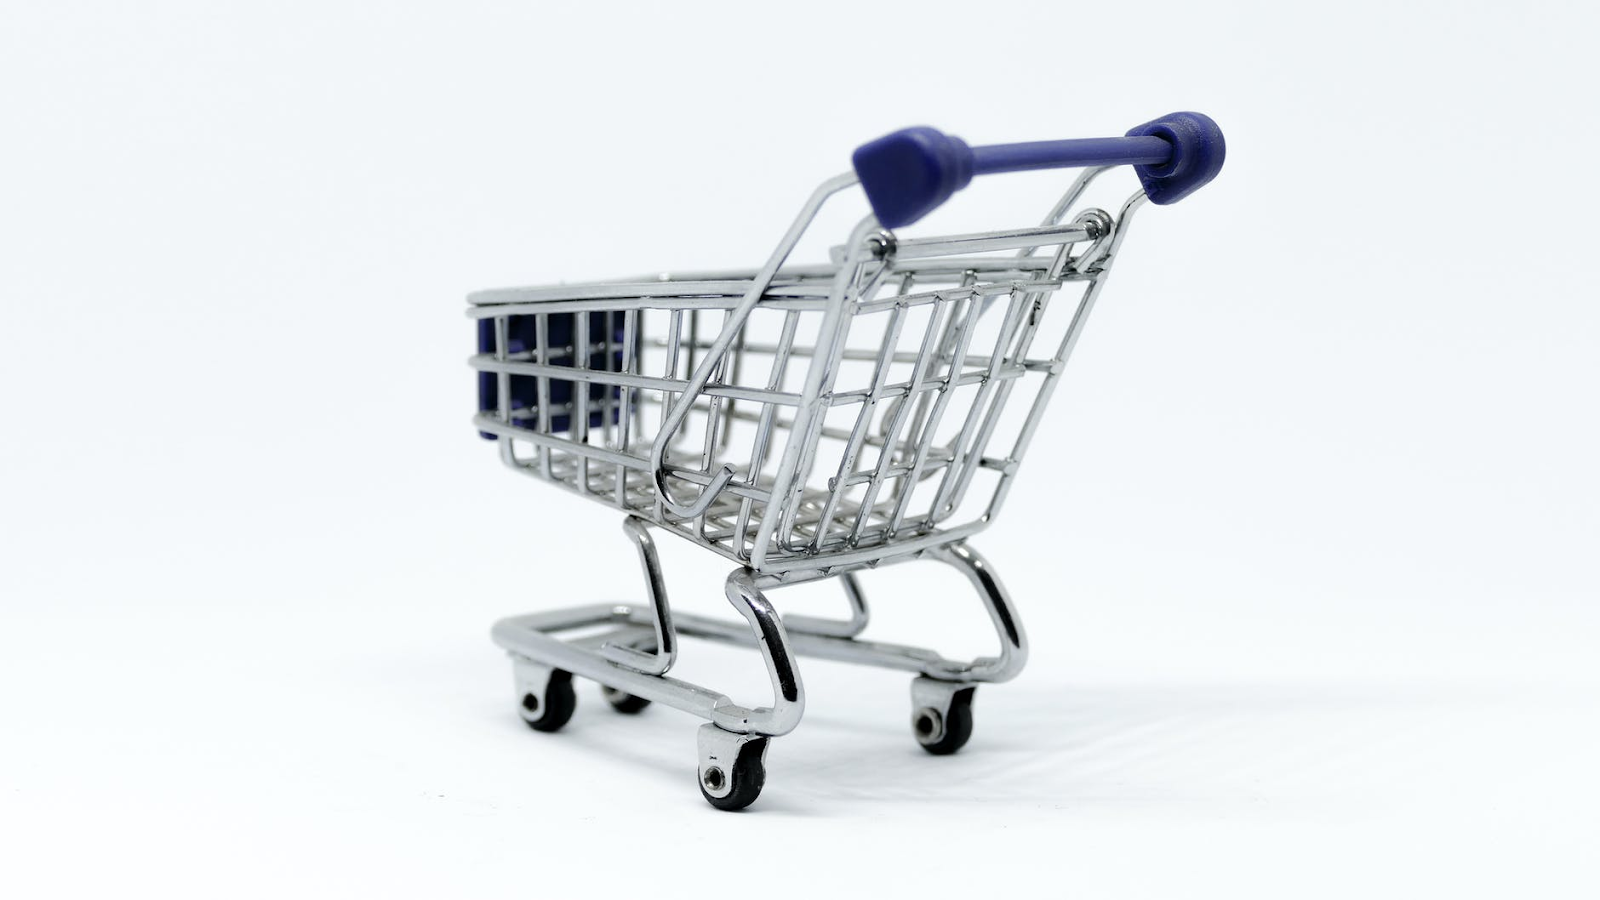 eCommerce metric shopping cart abandonment rate